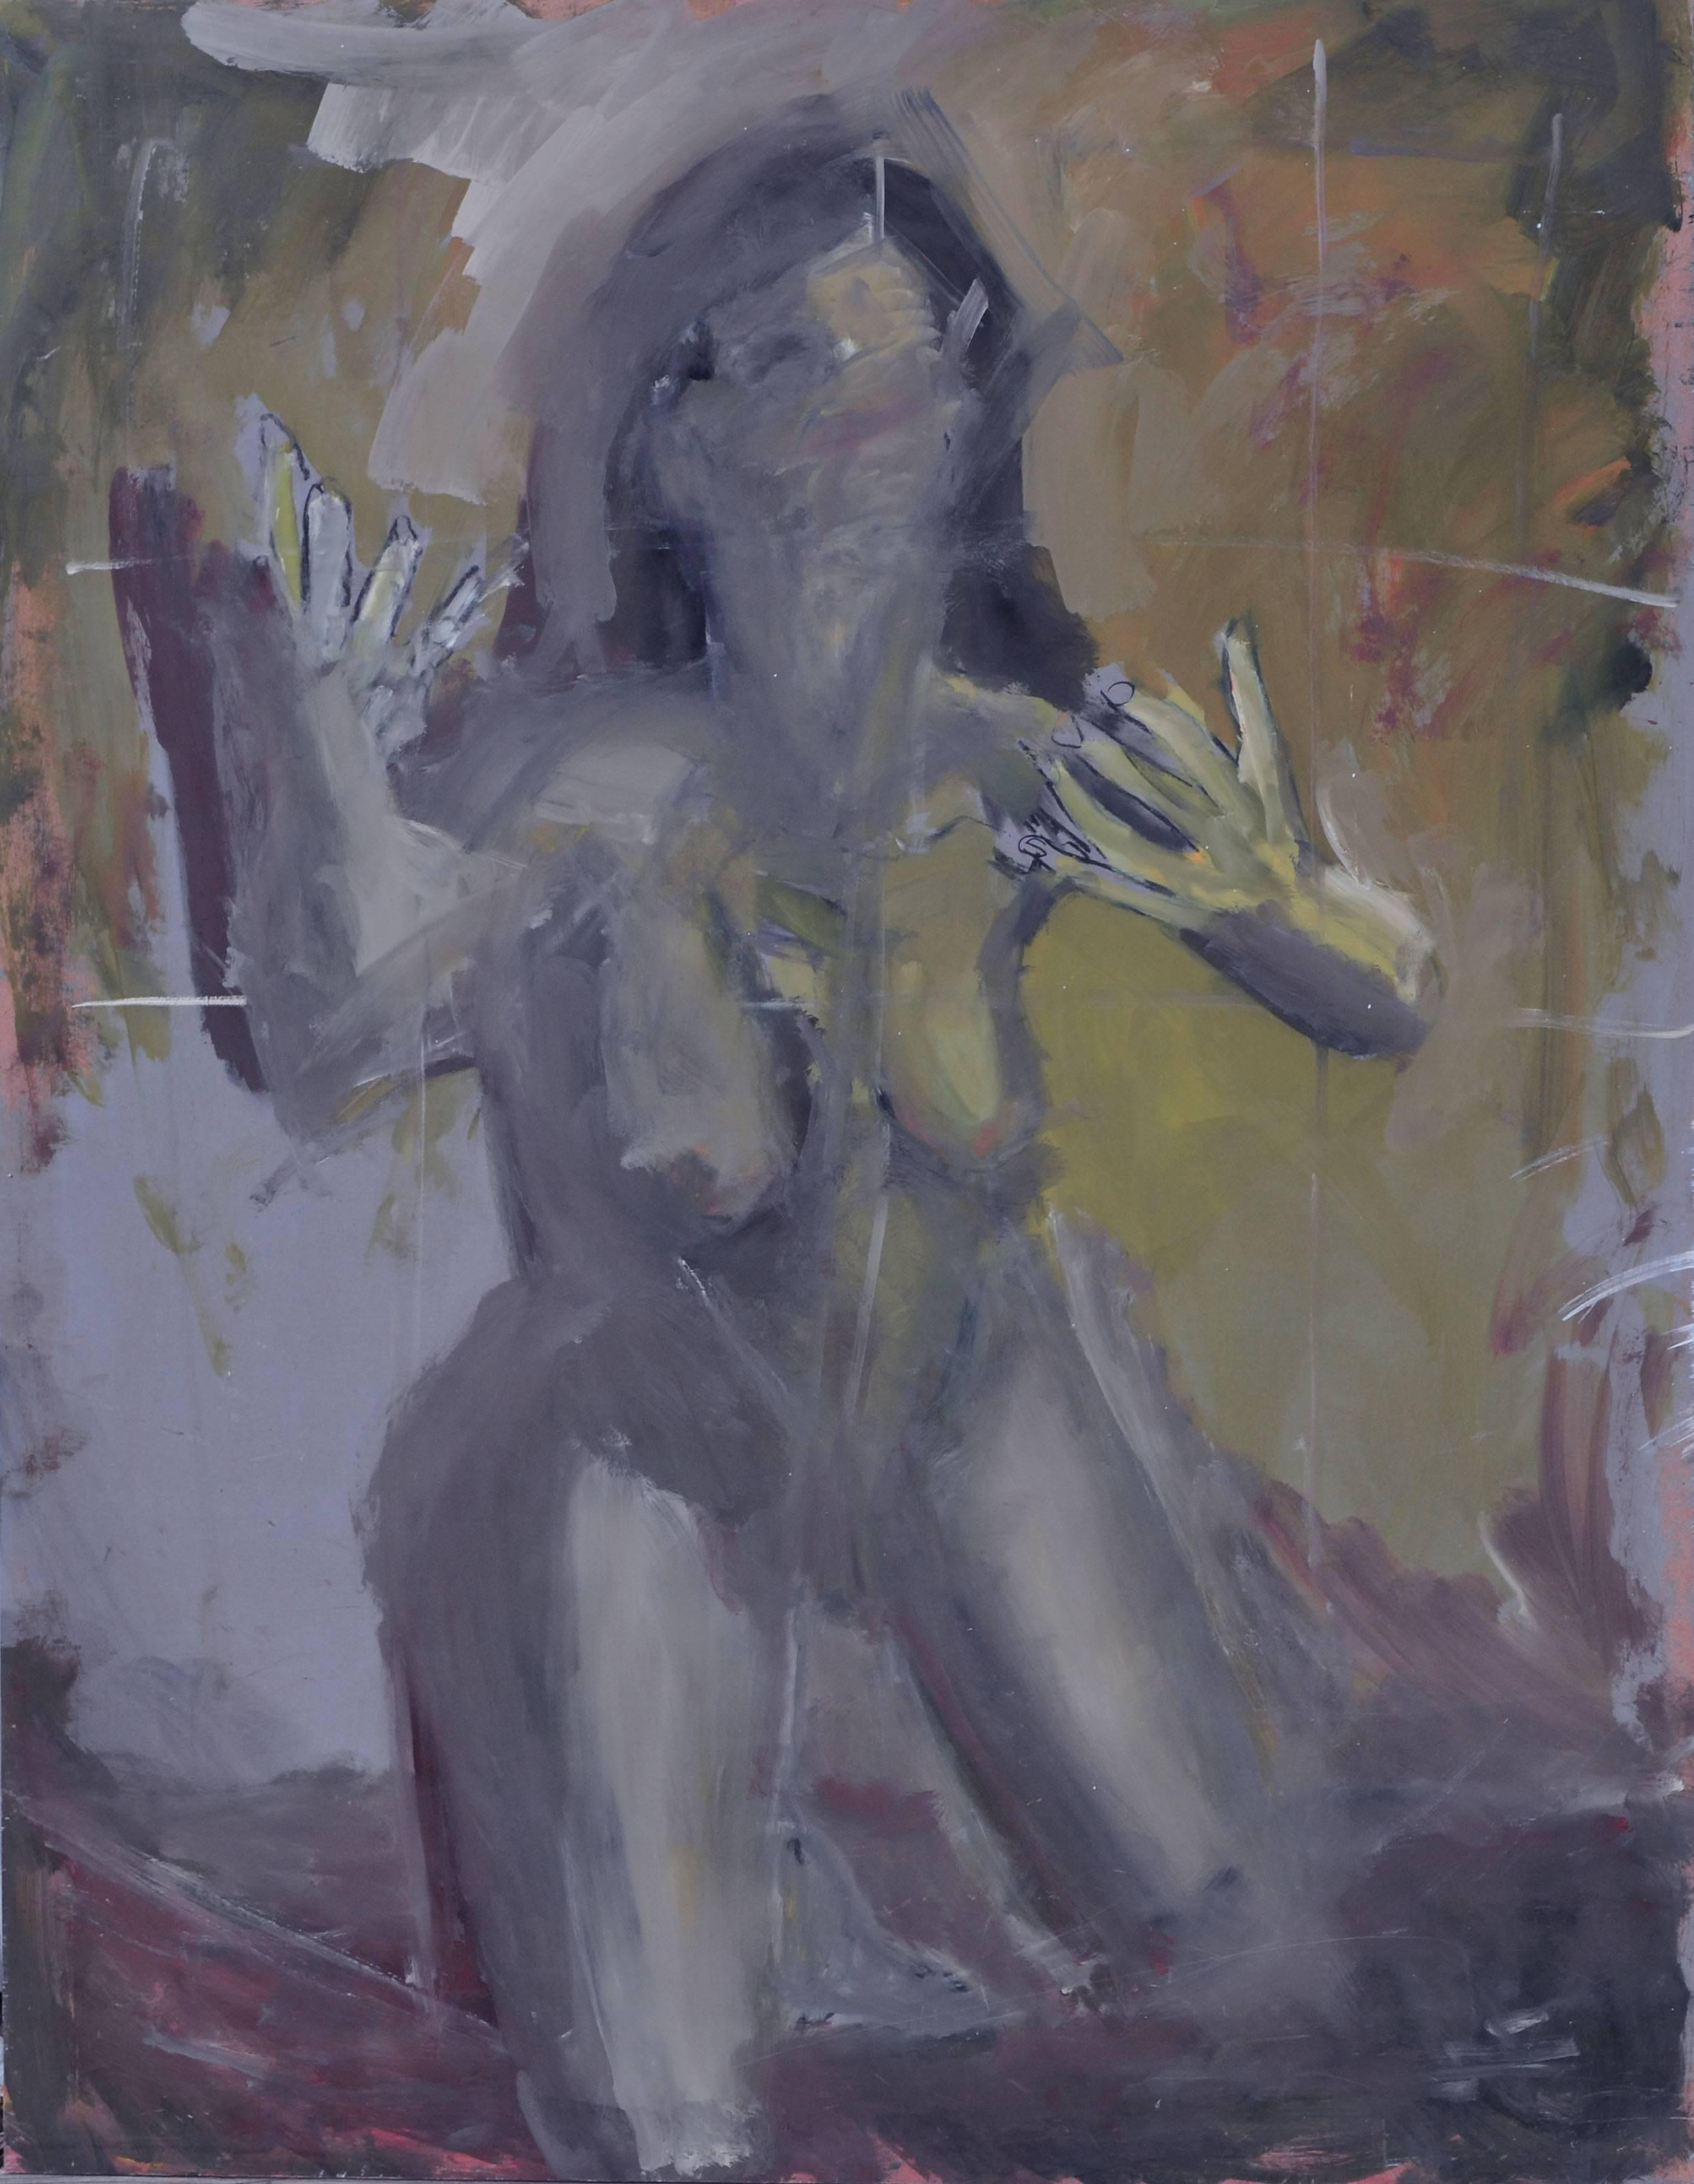 Female Nude in the Shadows - Figurative Abstract